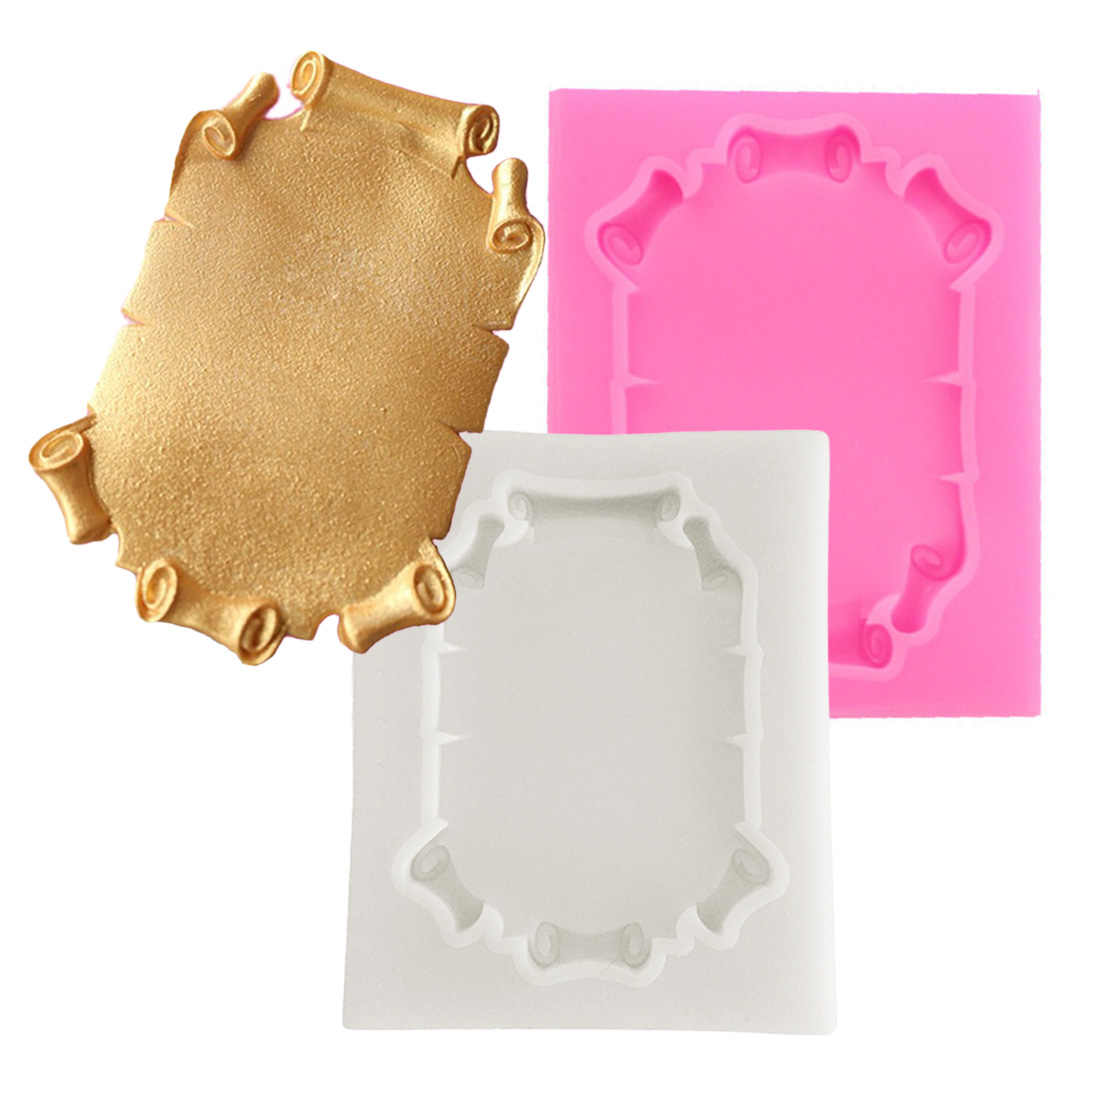 1pcs Retro Border Frame Cake Silicone Molds DIY Cupcake Fondant Cake Decorating Tools Candy Clay Chocolate Gumpaste Moulds